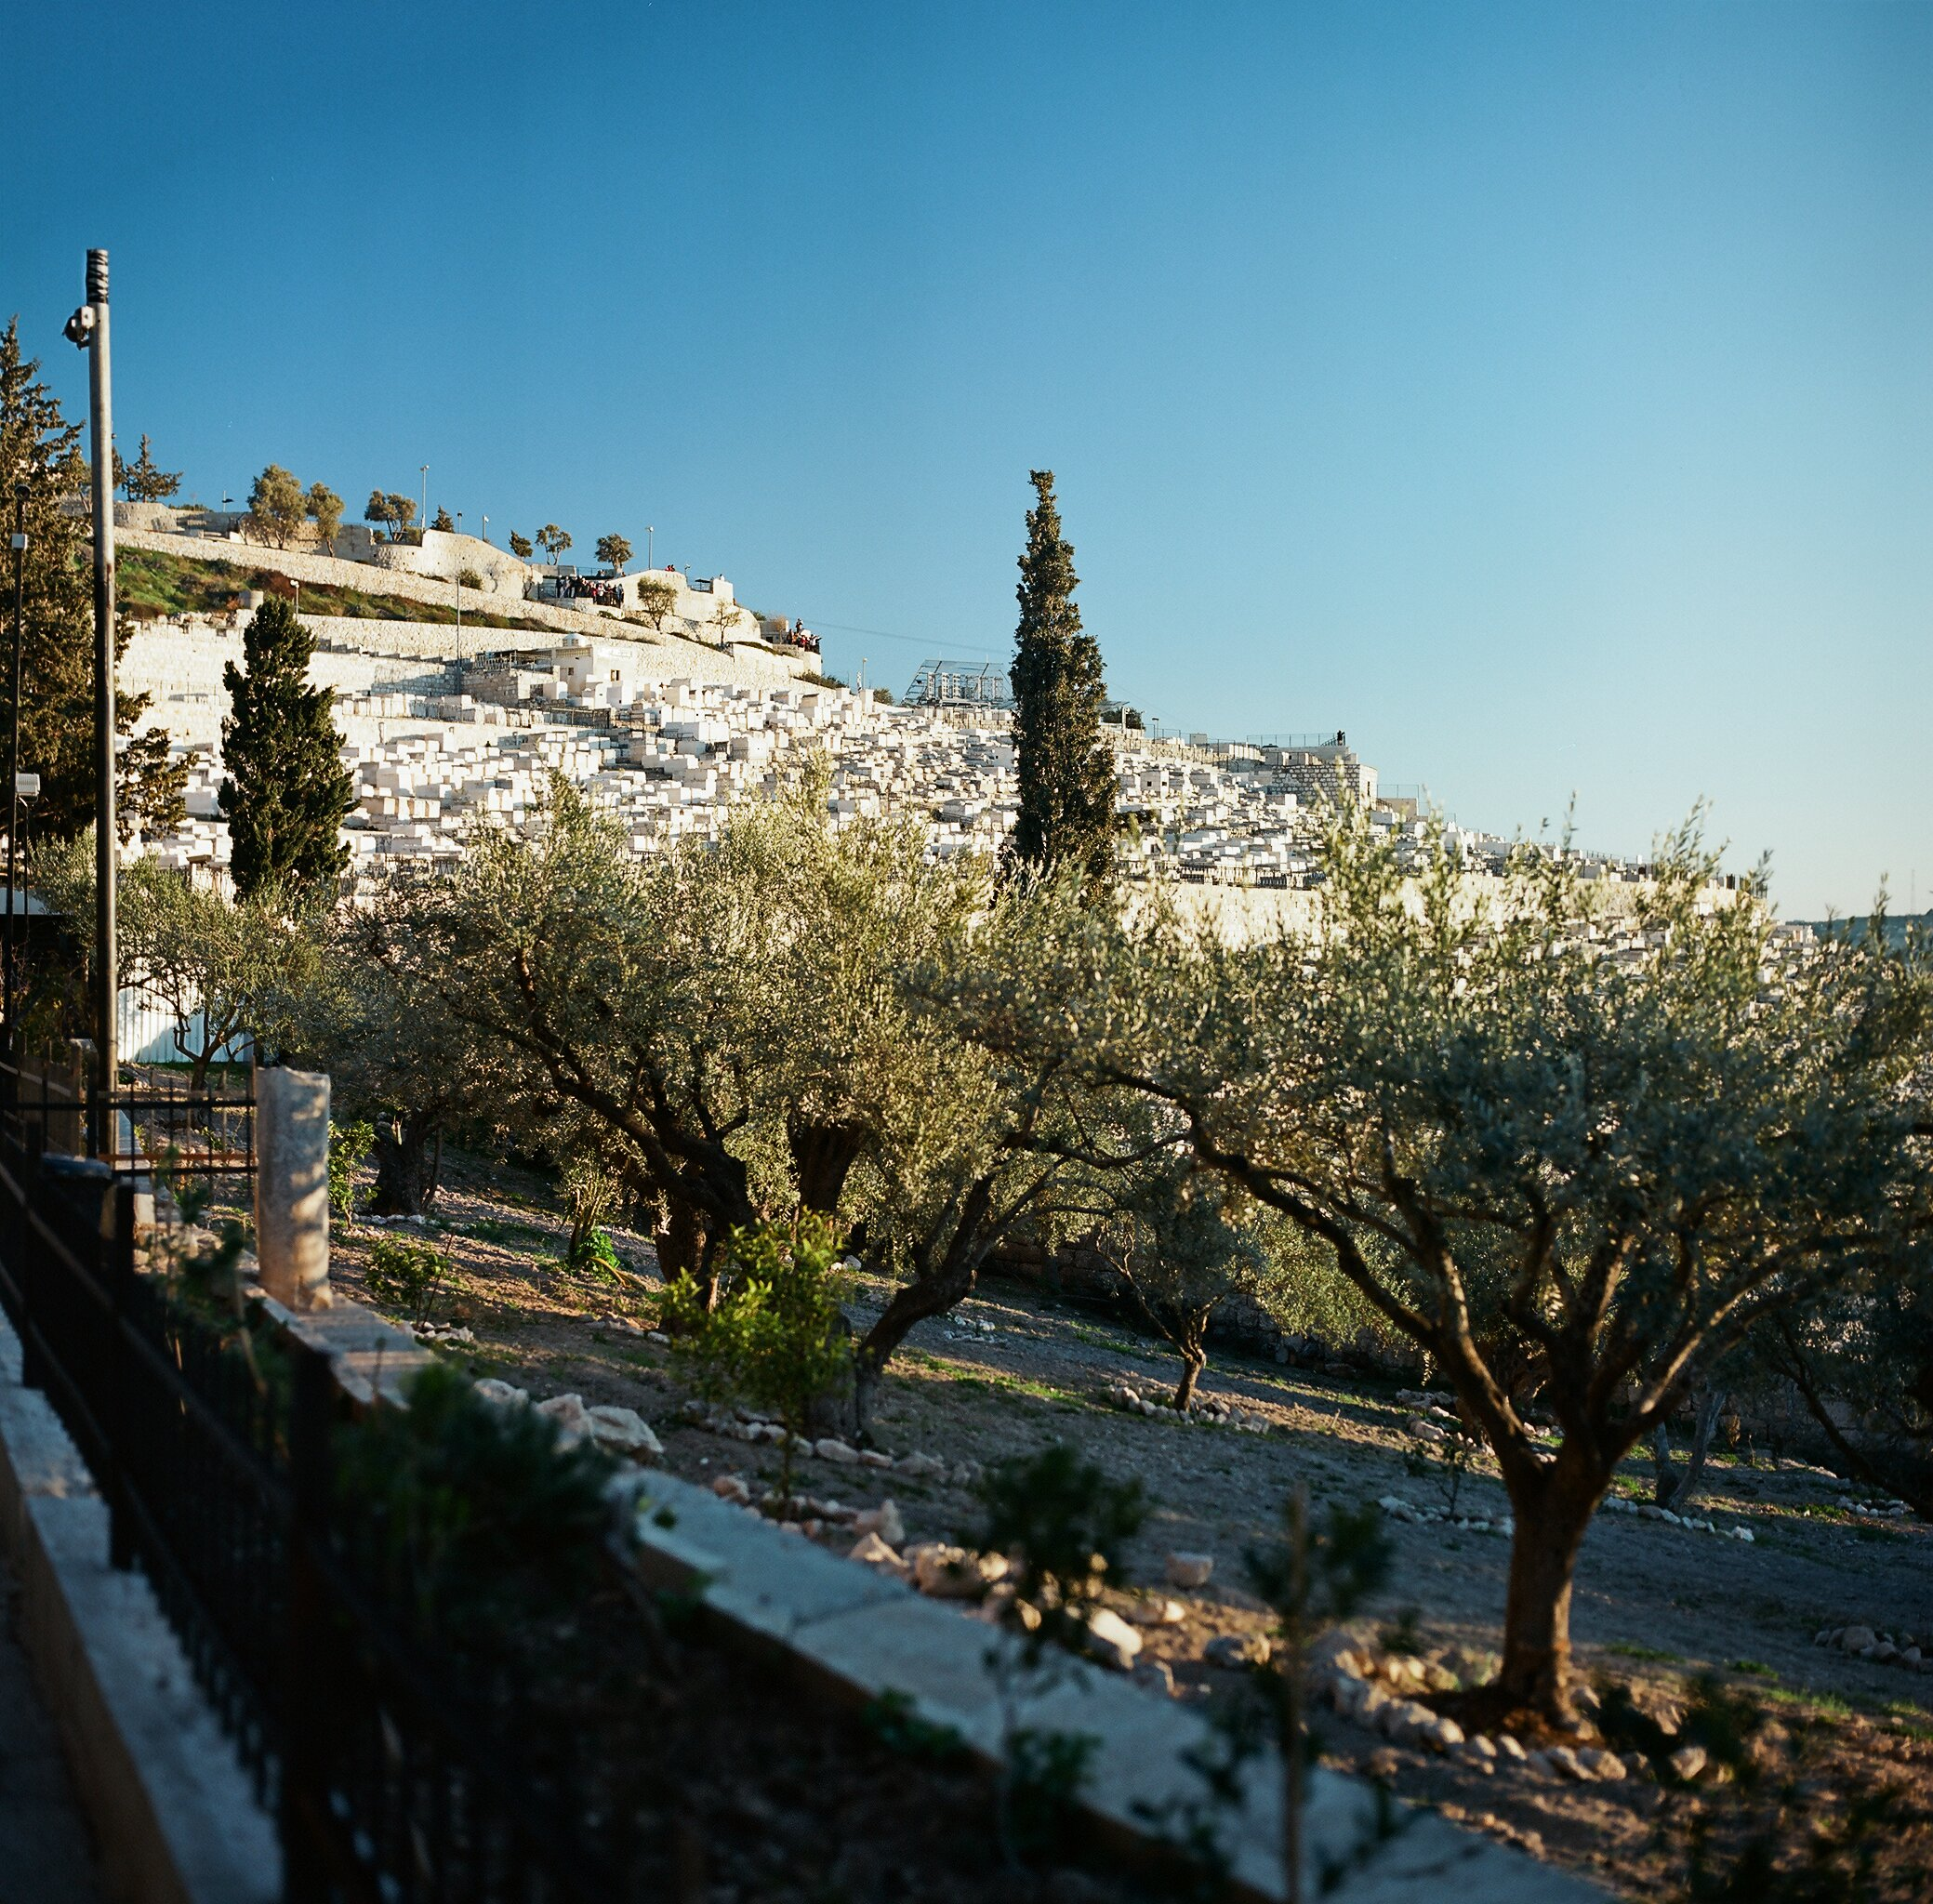 Jewish cemetery on the Mount of Olives, Jerusalem, Israel.